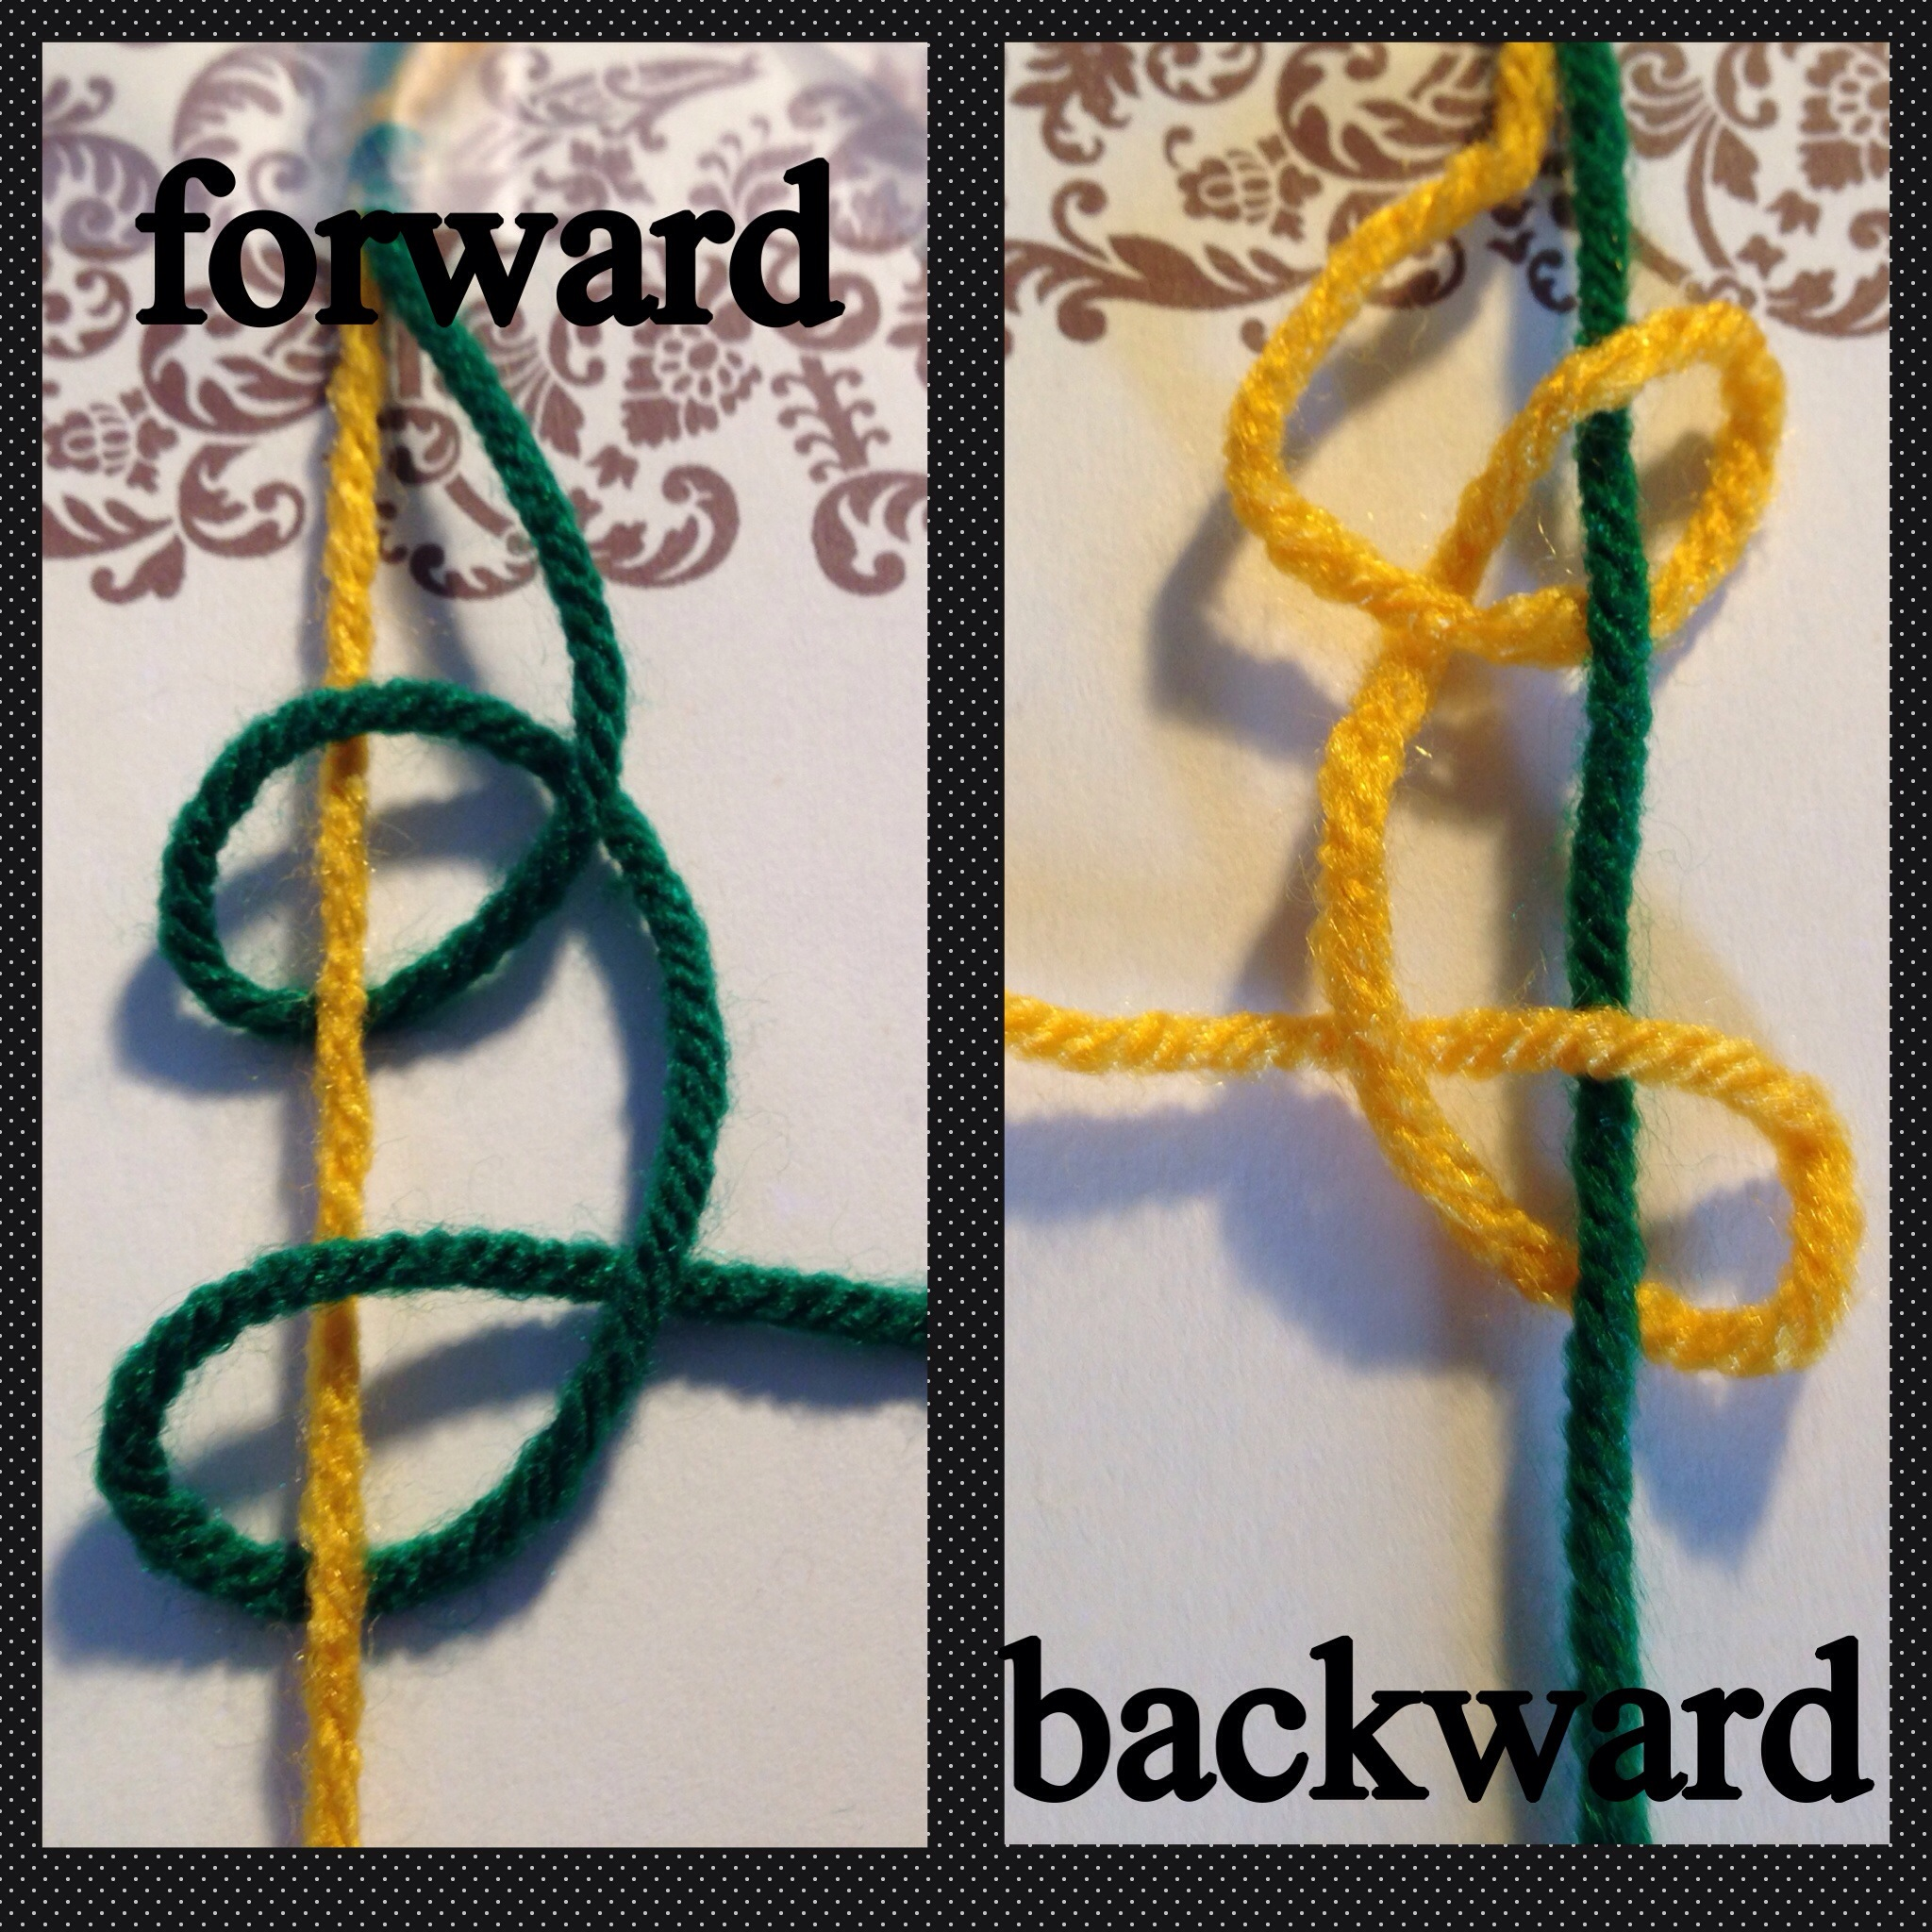 How to tie a forward backward knot danodillydally how to tie a forward backward knot ccuart Image collections